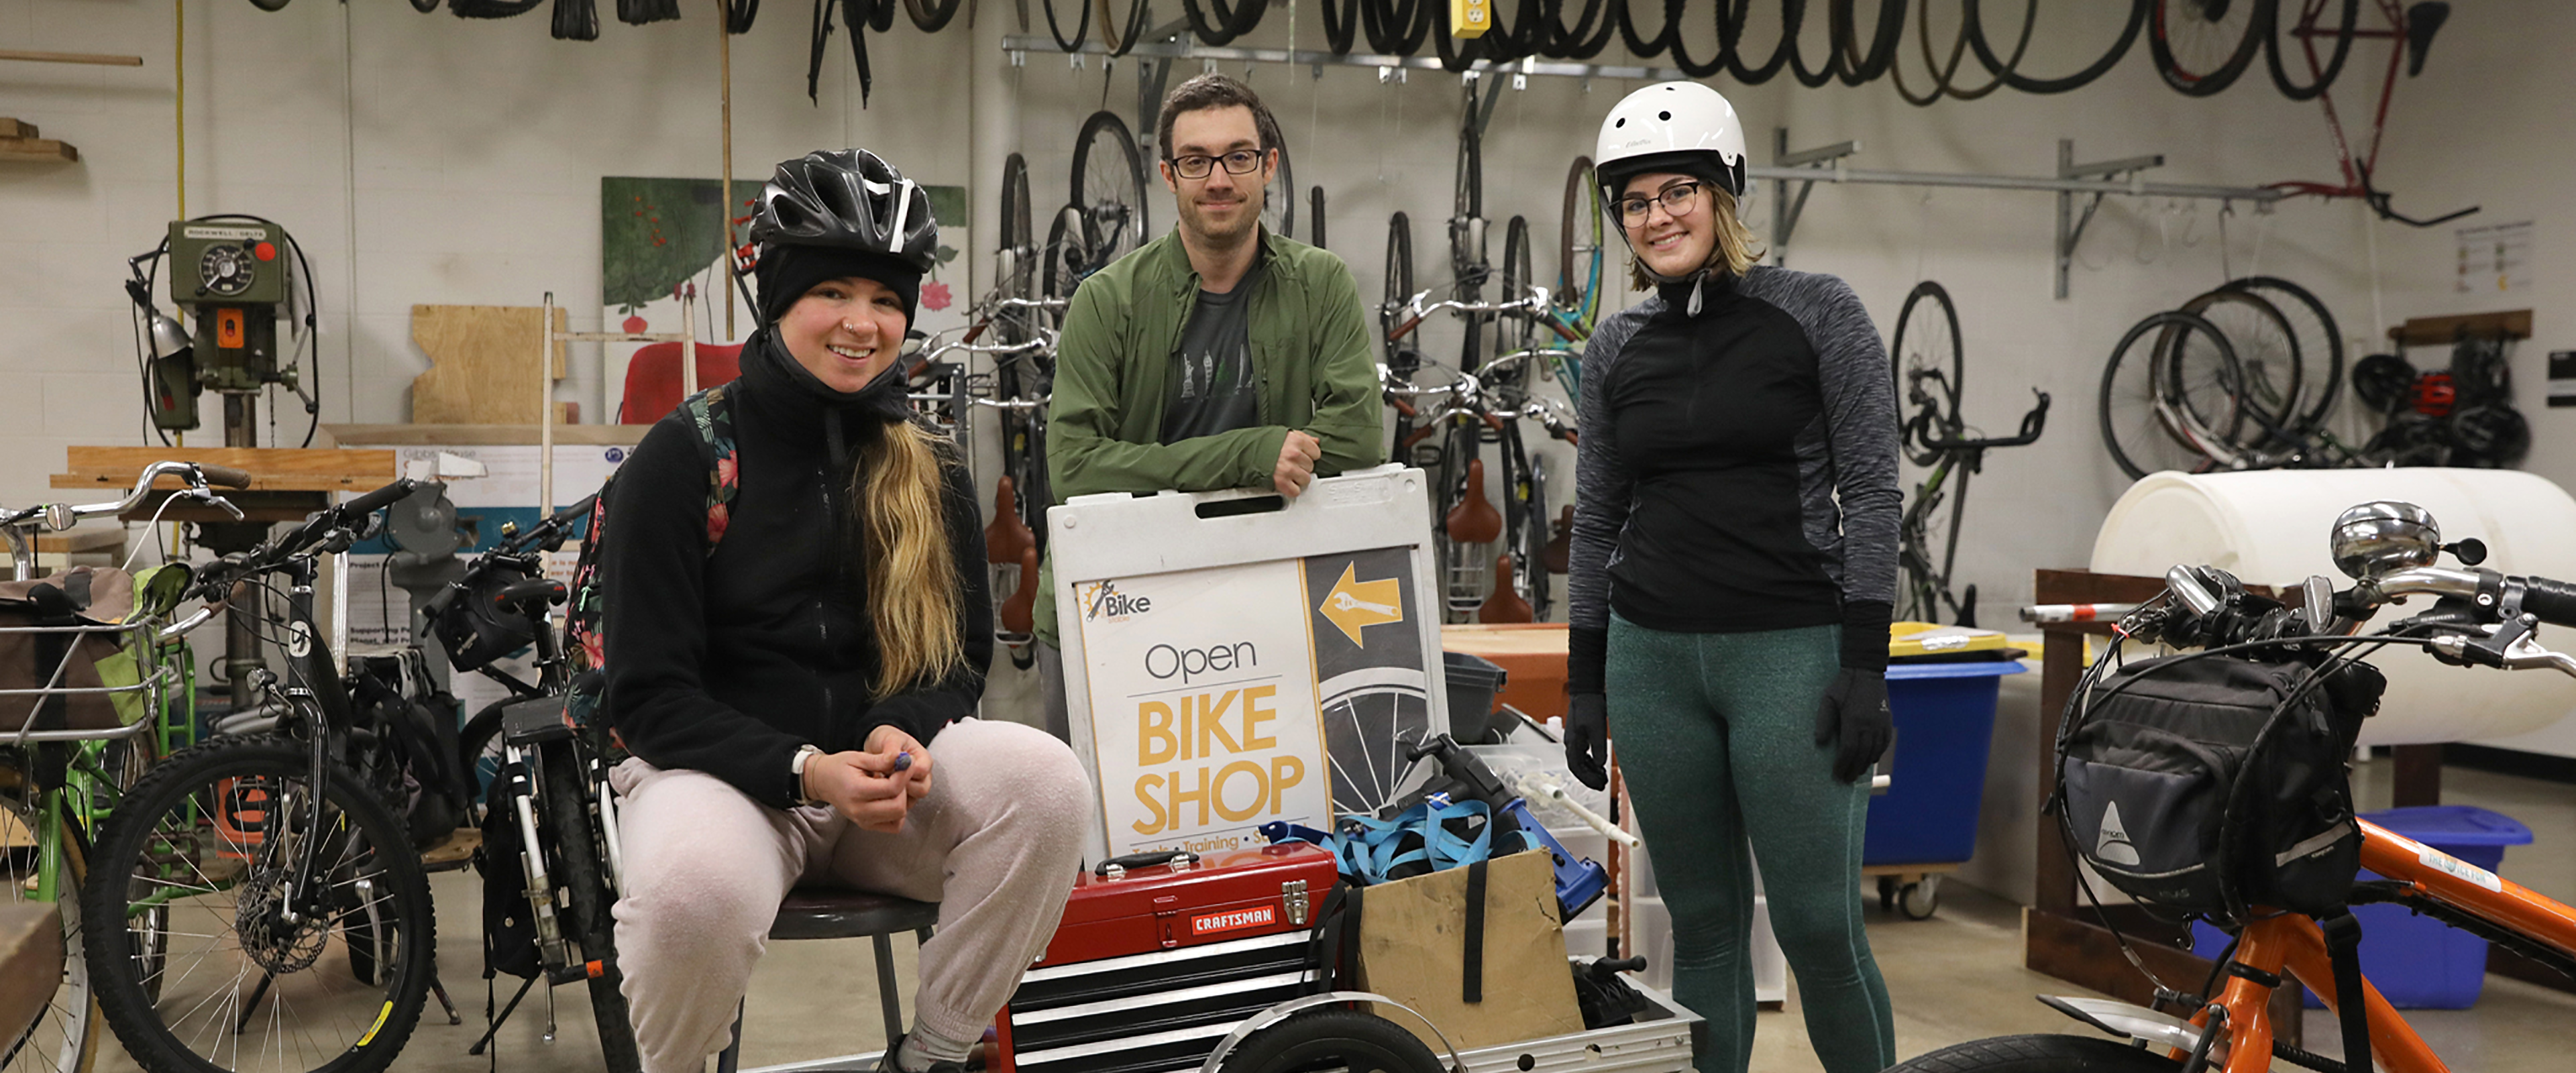 Slideshow image: WMU students in cycling gear pose in the campus bike shop.